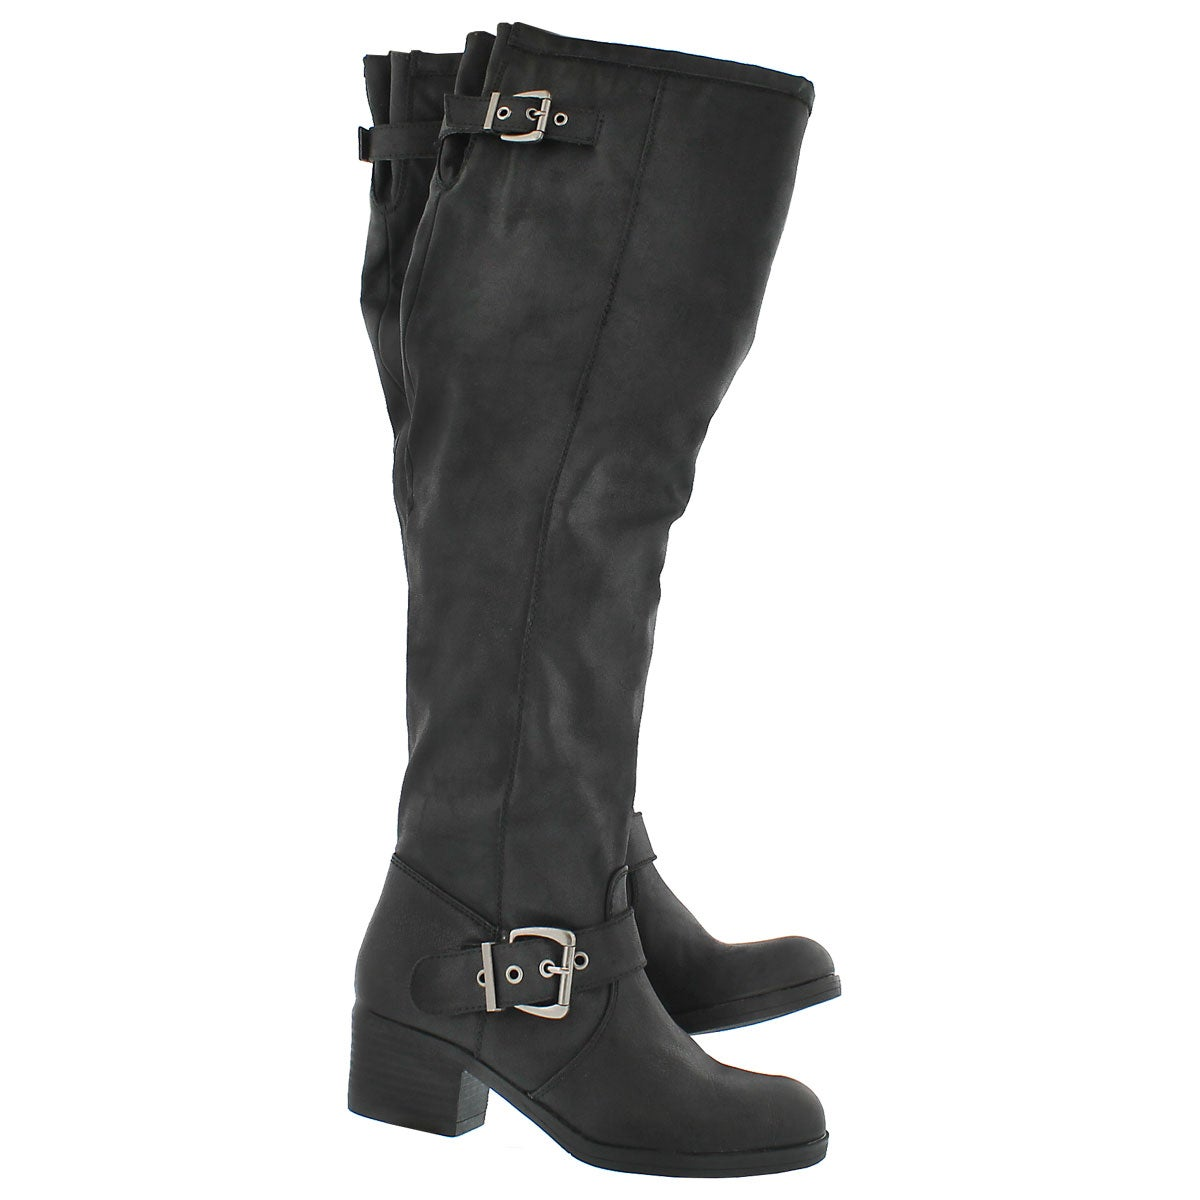 Lds Brylie black tall zip up boot